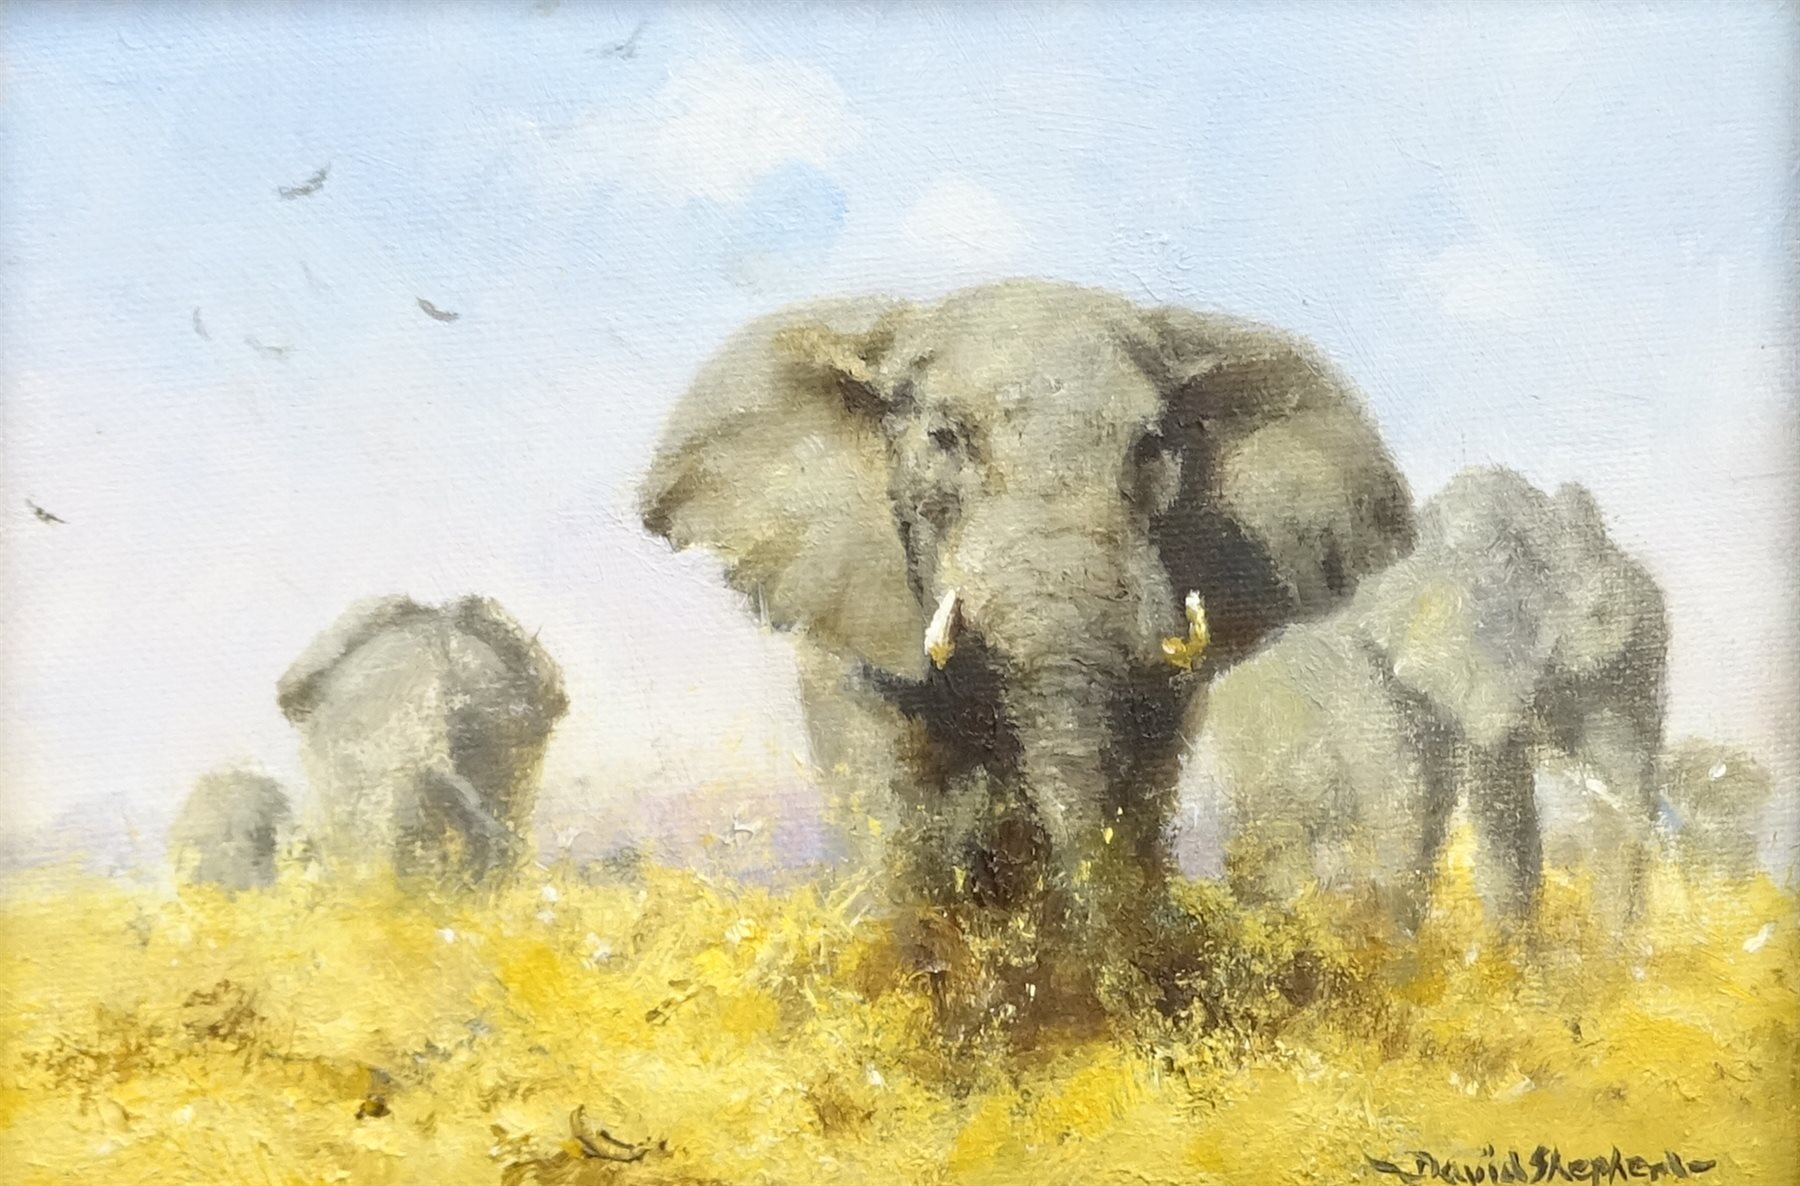 david shepherd, Elephants, original painting